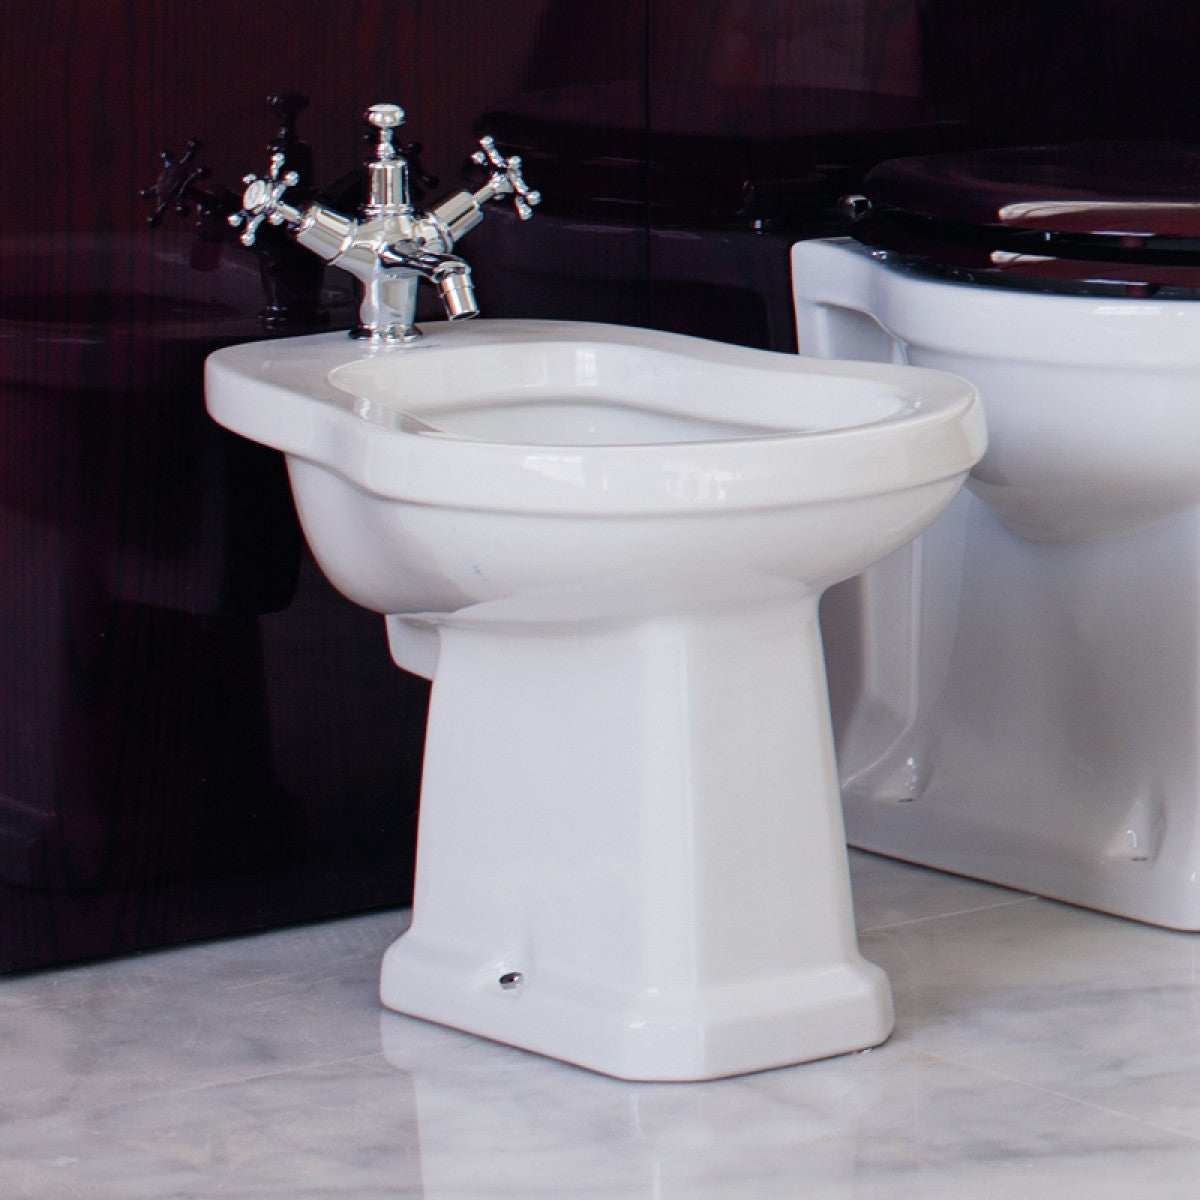 BURLINGTON FLOOR STANDING BIDET